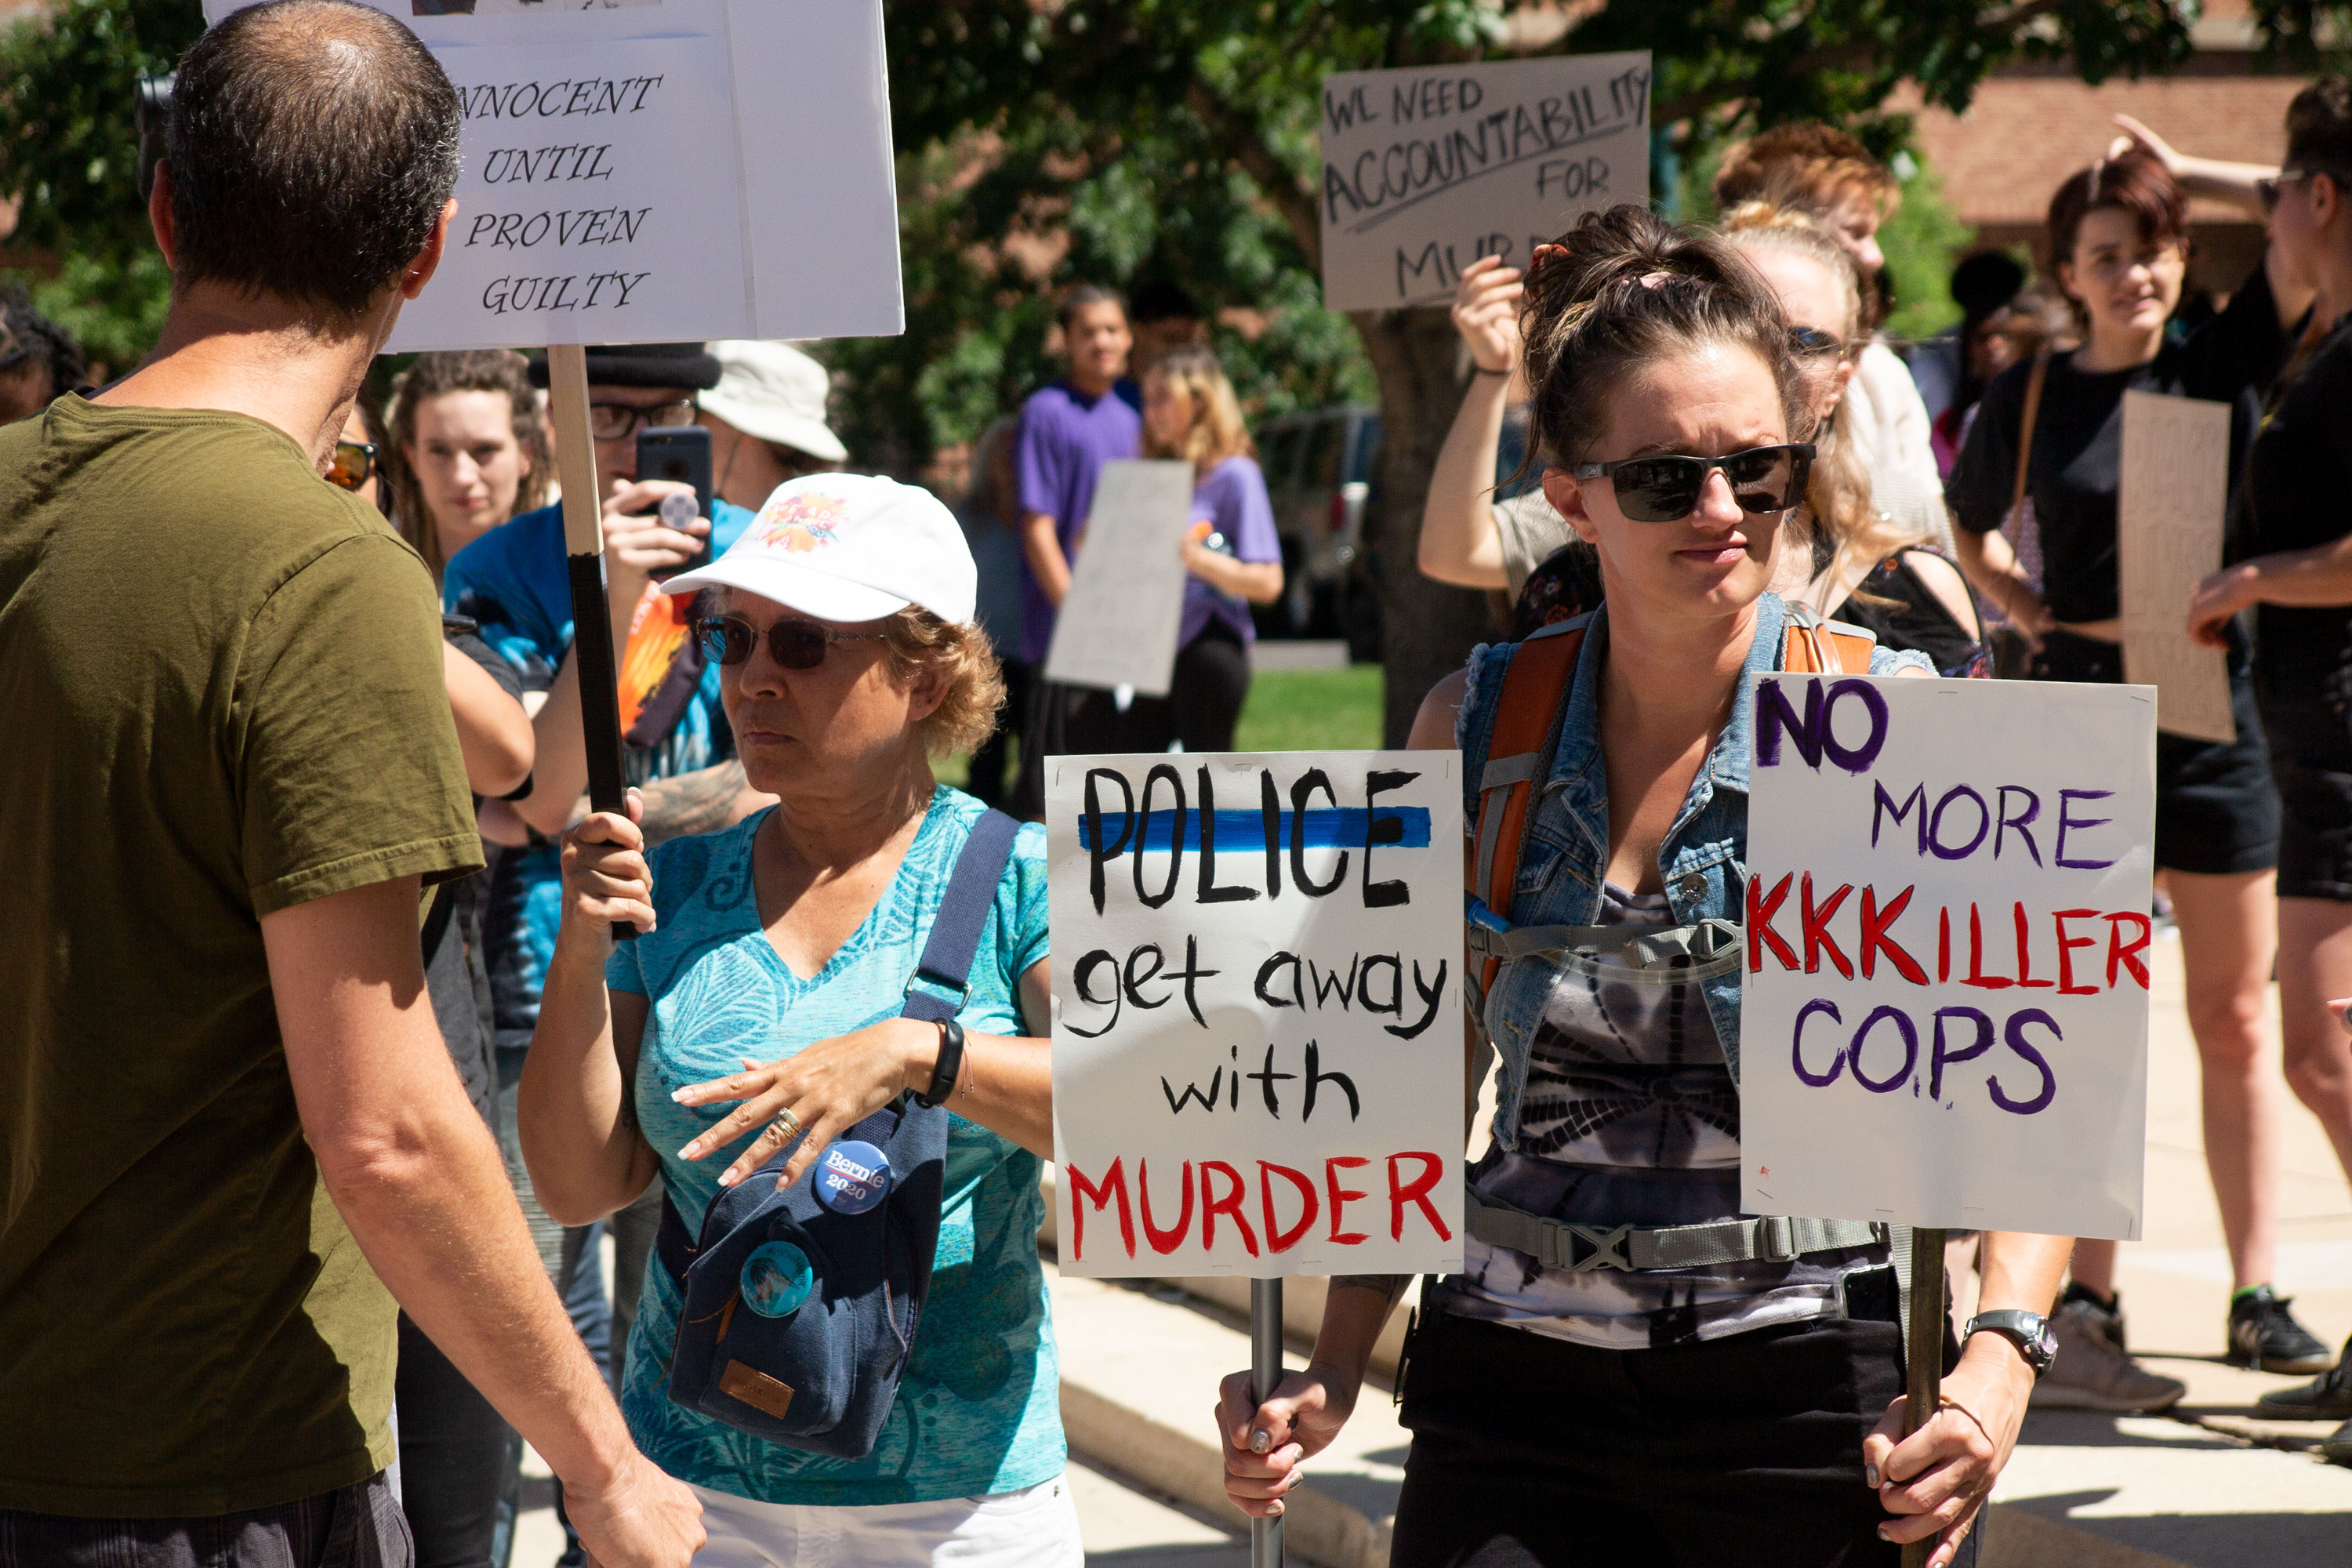 Demonstrators protest a fatal officer-involved shooting that occurred over the weekend in Colorado Springs on Monday, Aug. 5, 2019.